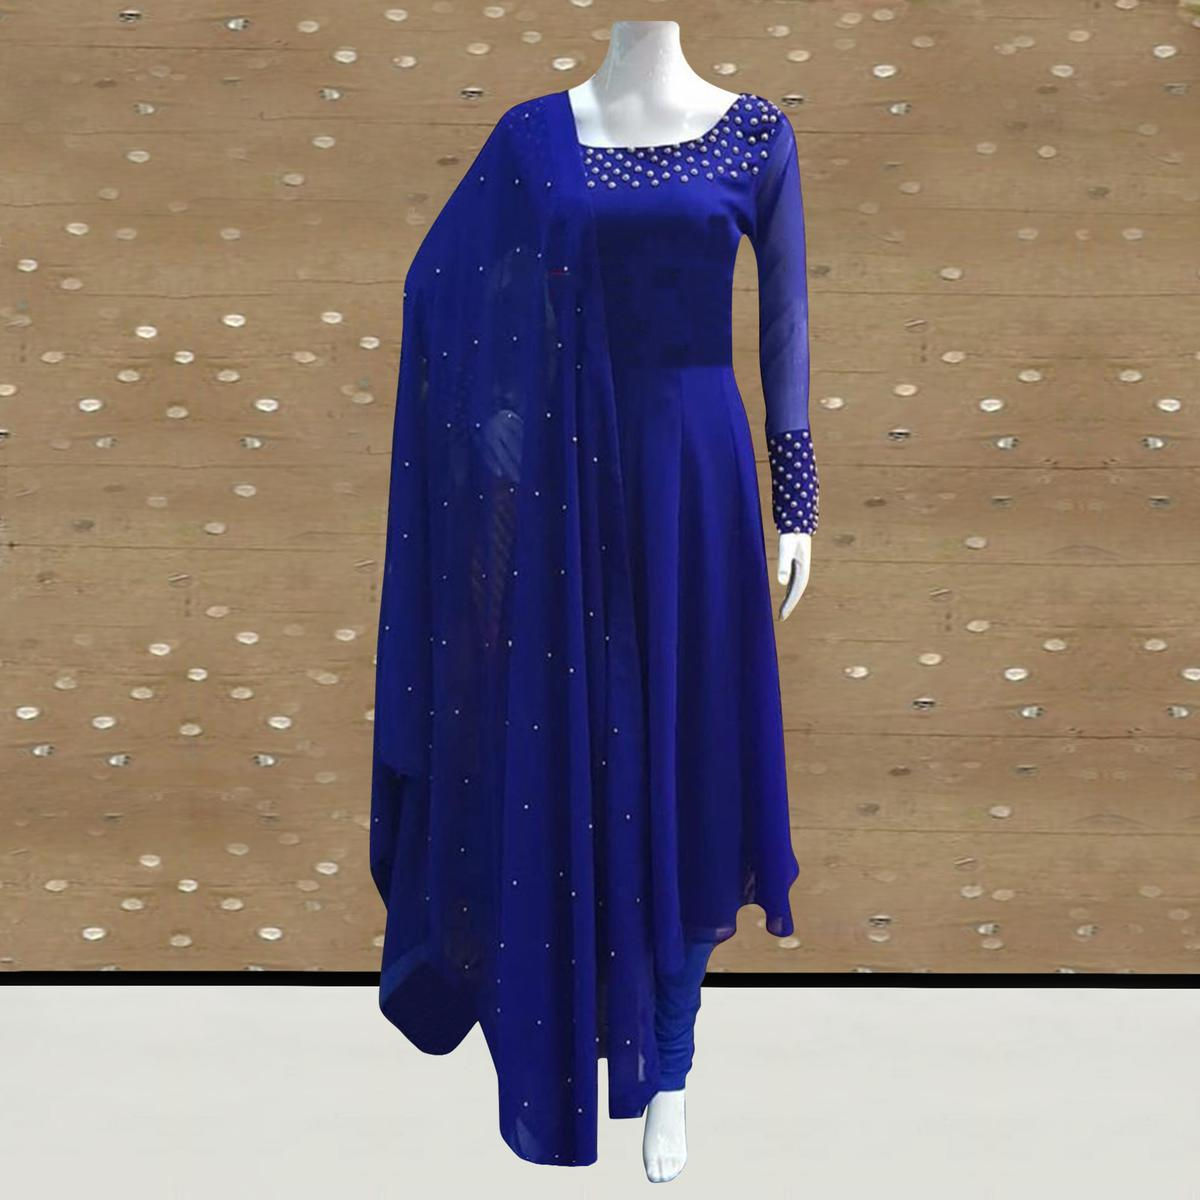 Buy Exotic Royal Blue Colored Partywear Pearl Work Stitched Georgette Churidar Suit For Women S Wear Online India Best Prices Affordable Prices Best Price Online Reviews Peachmode